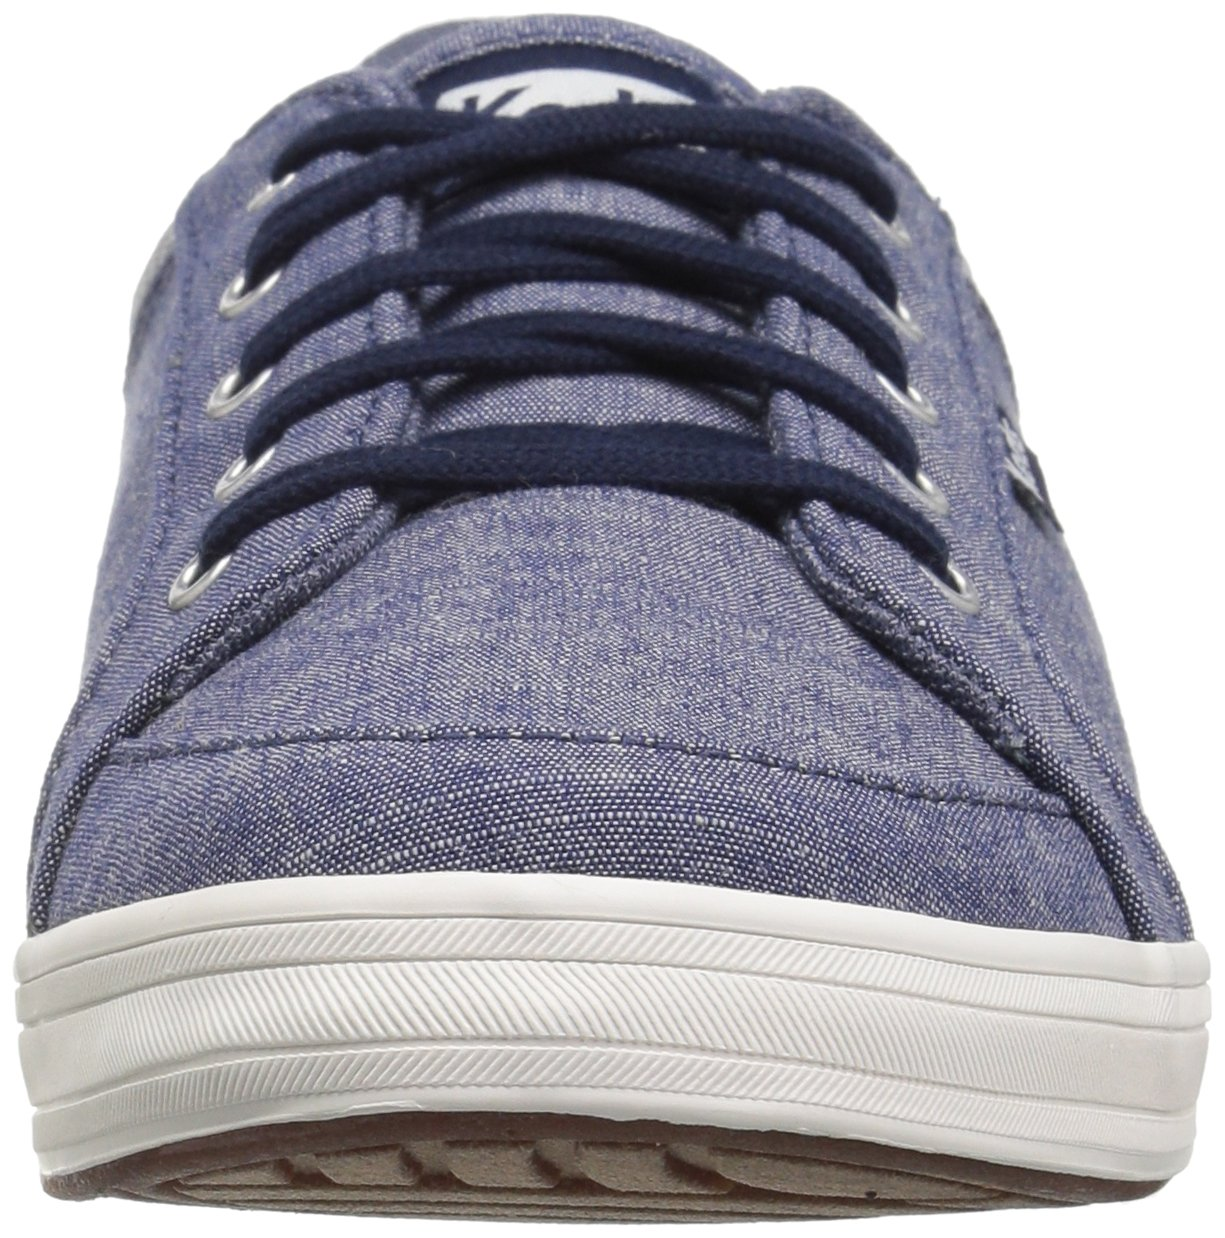 Keds Women's Vollie Ll Chambray Sneaker B072WRGH33 8 B(M) US|Navy